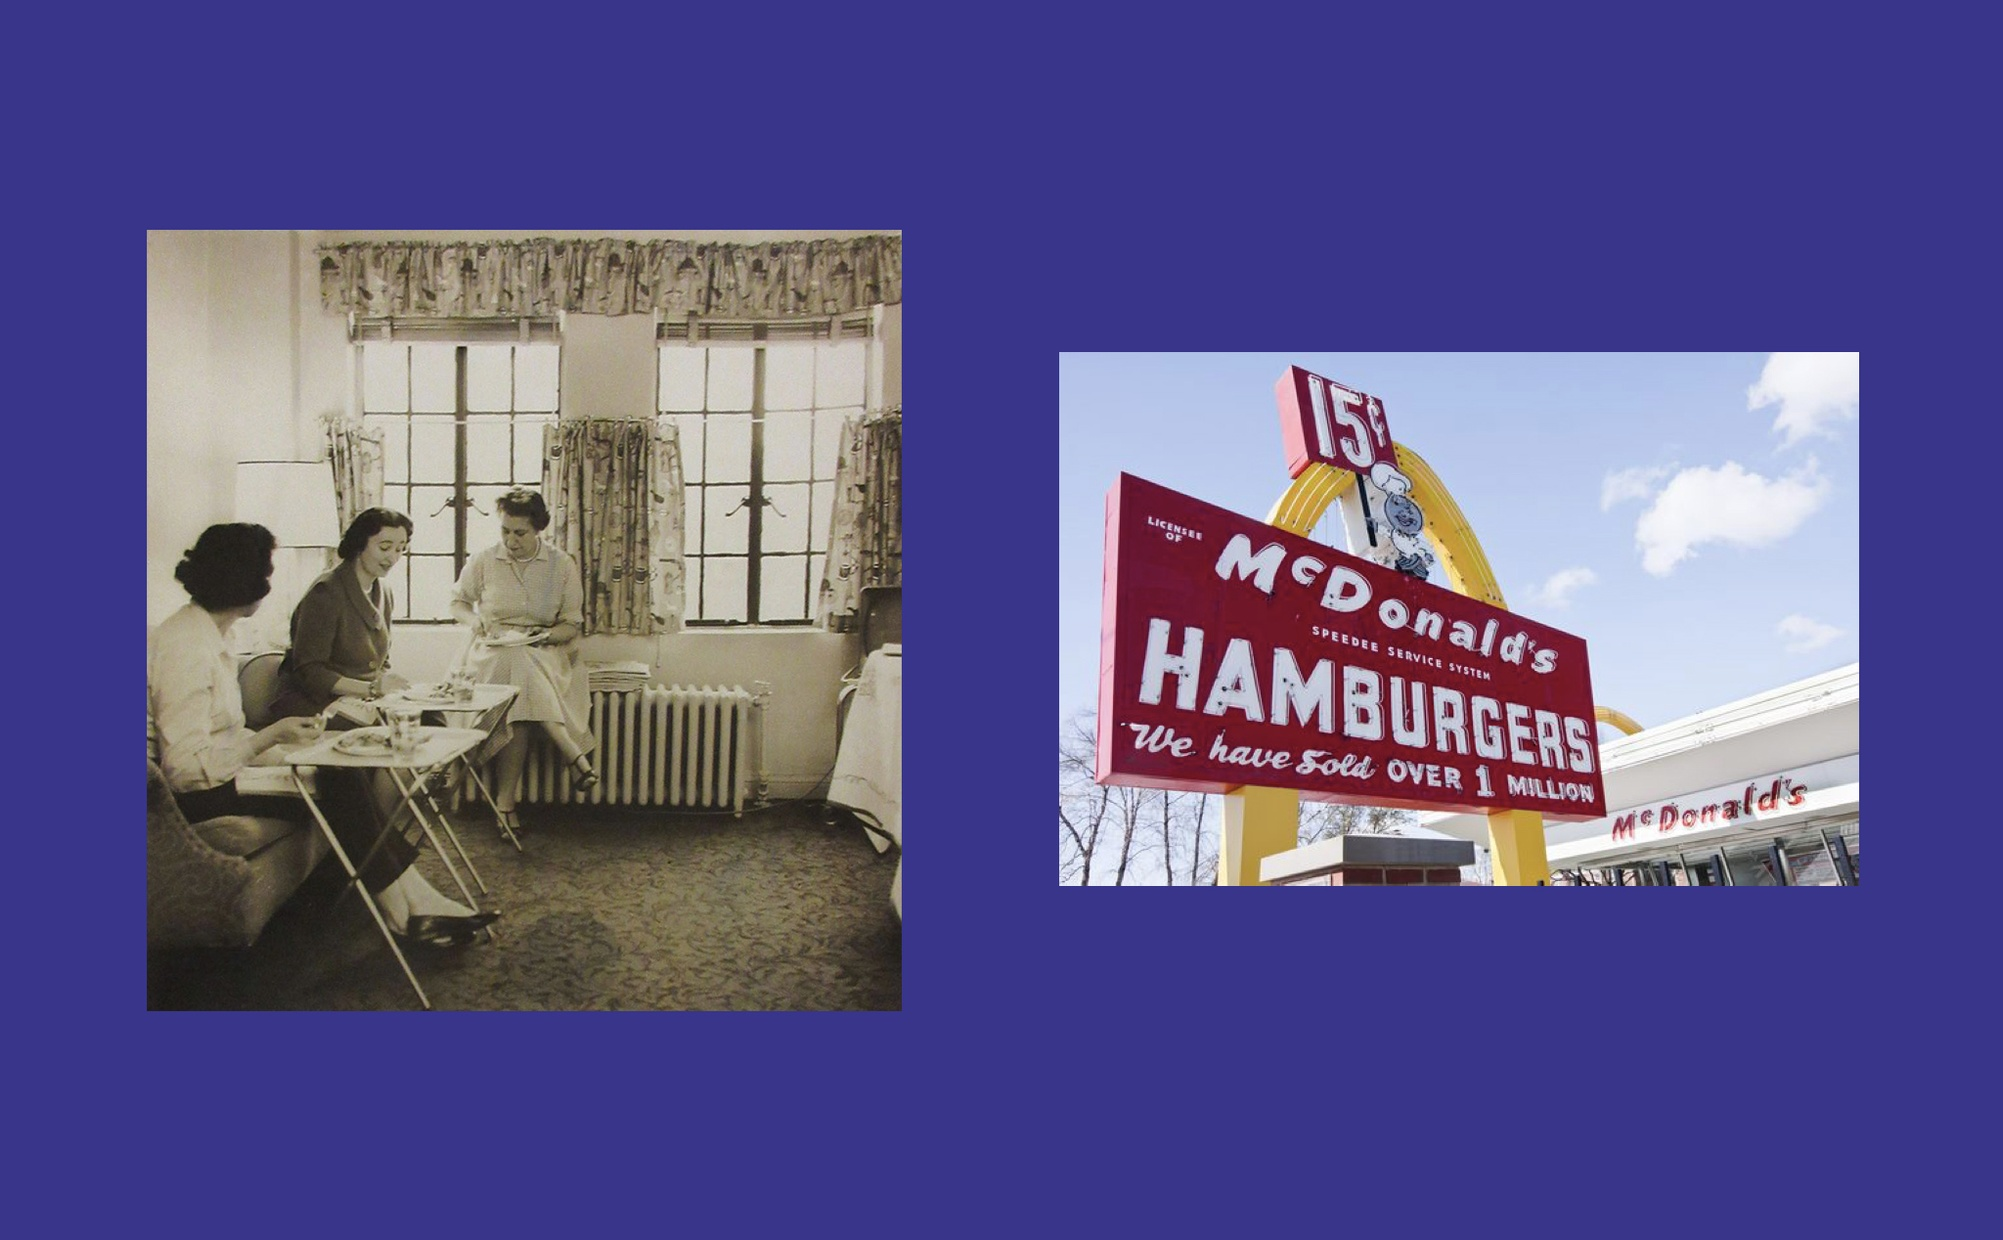 Two images side by side, one image is a black and white photograph of three light-skinned women eating in a living room, and the other image is a color photograph of a McDonald's restaurant sign indicating that hamburgers cost 15 cents.